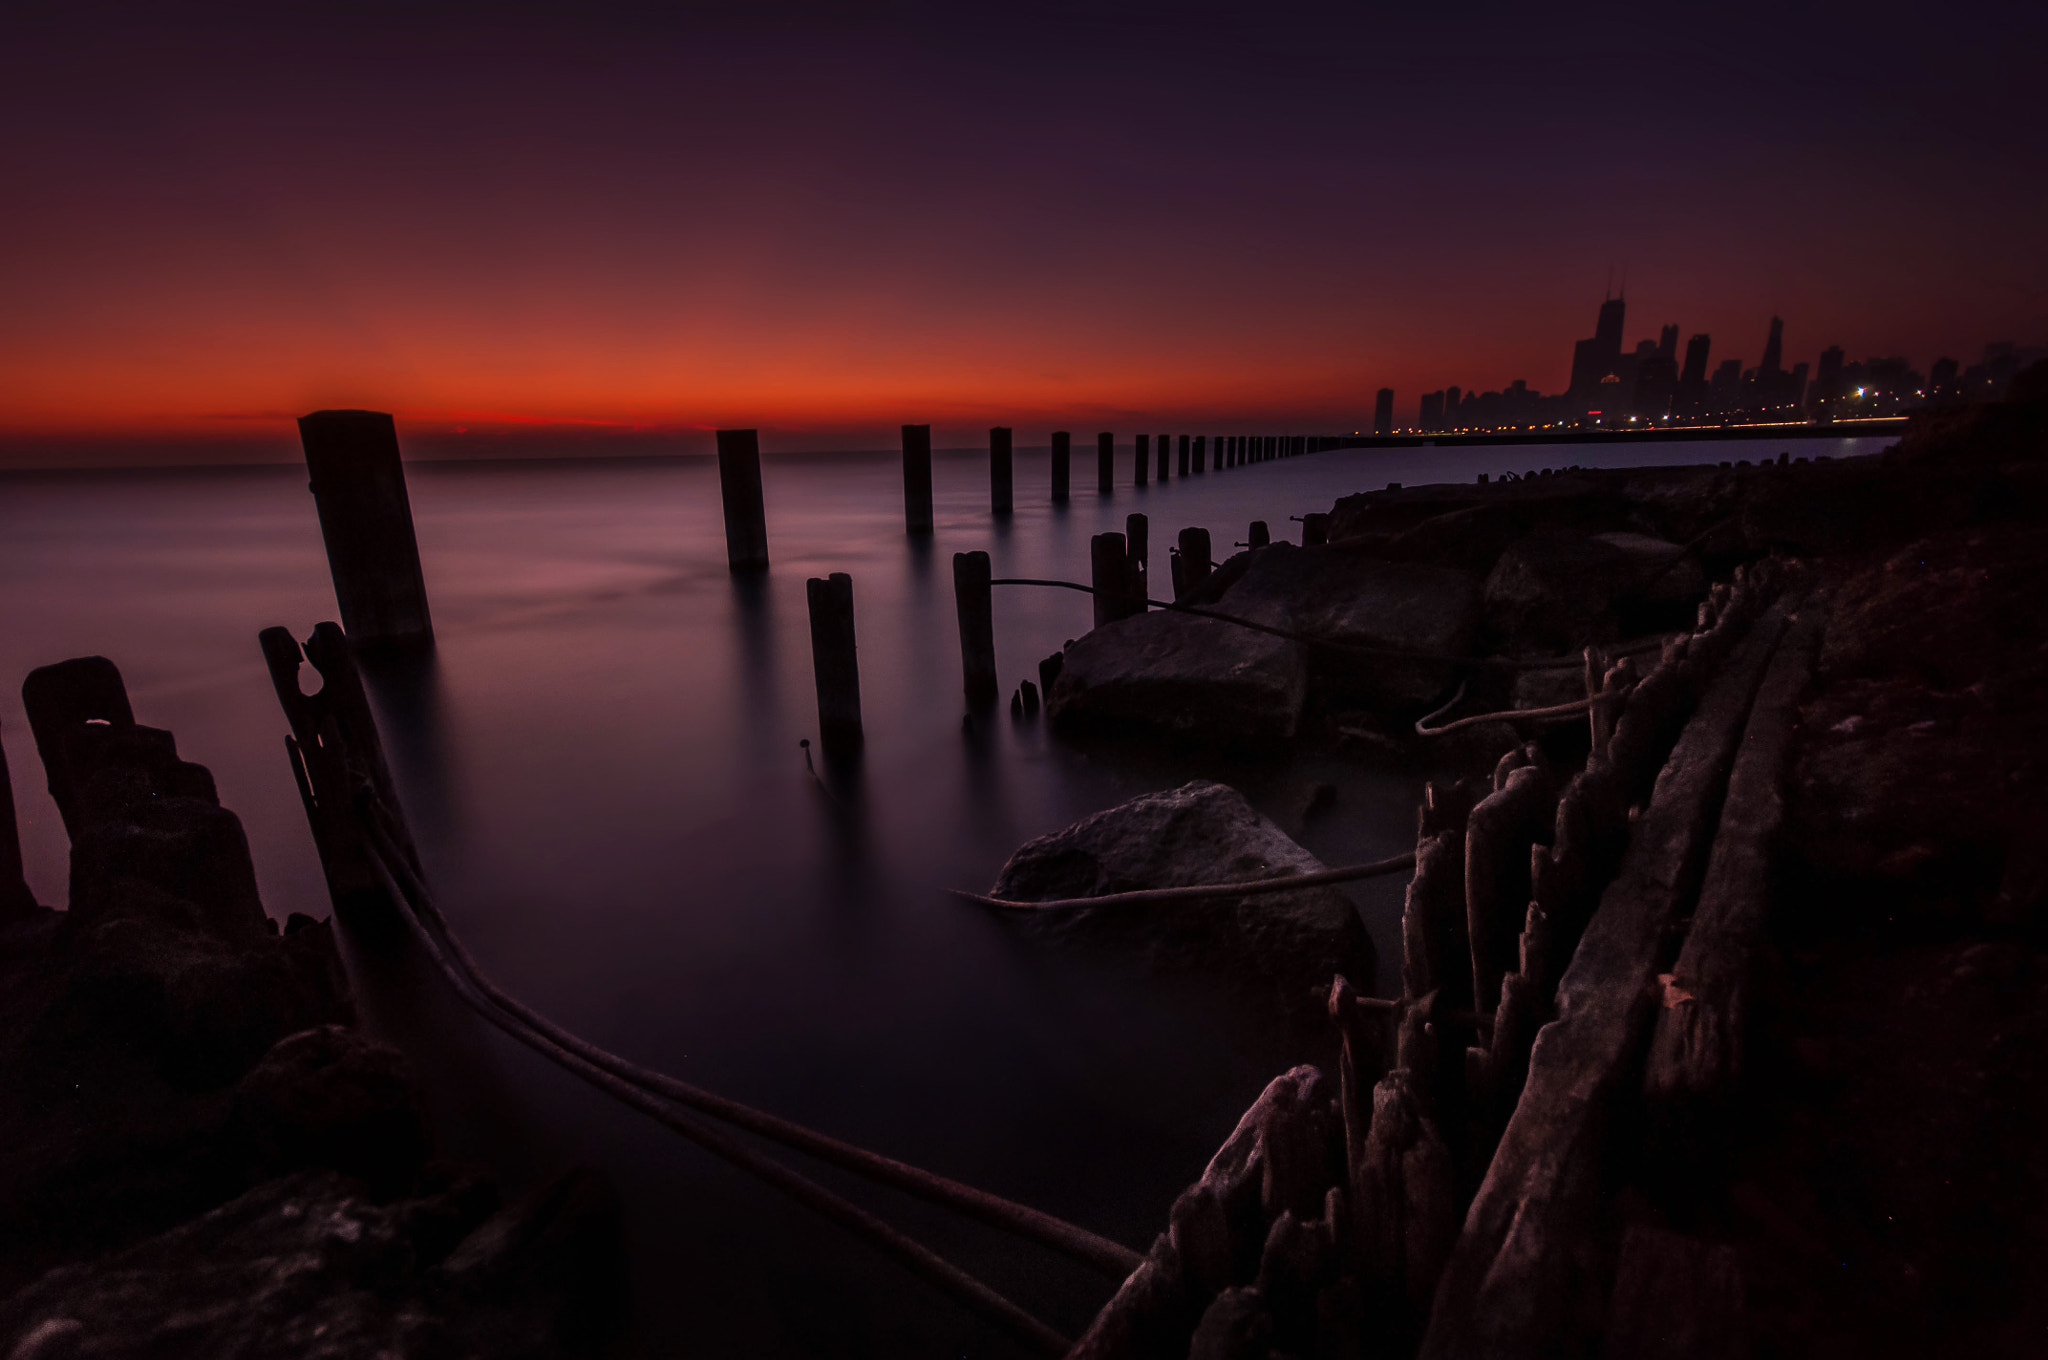 Photograph A new day by Matt Frankel on 500px